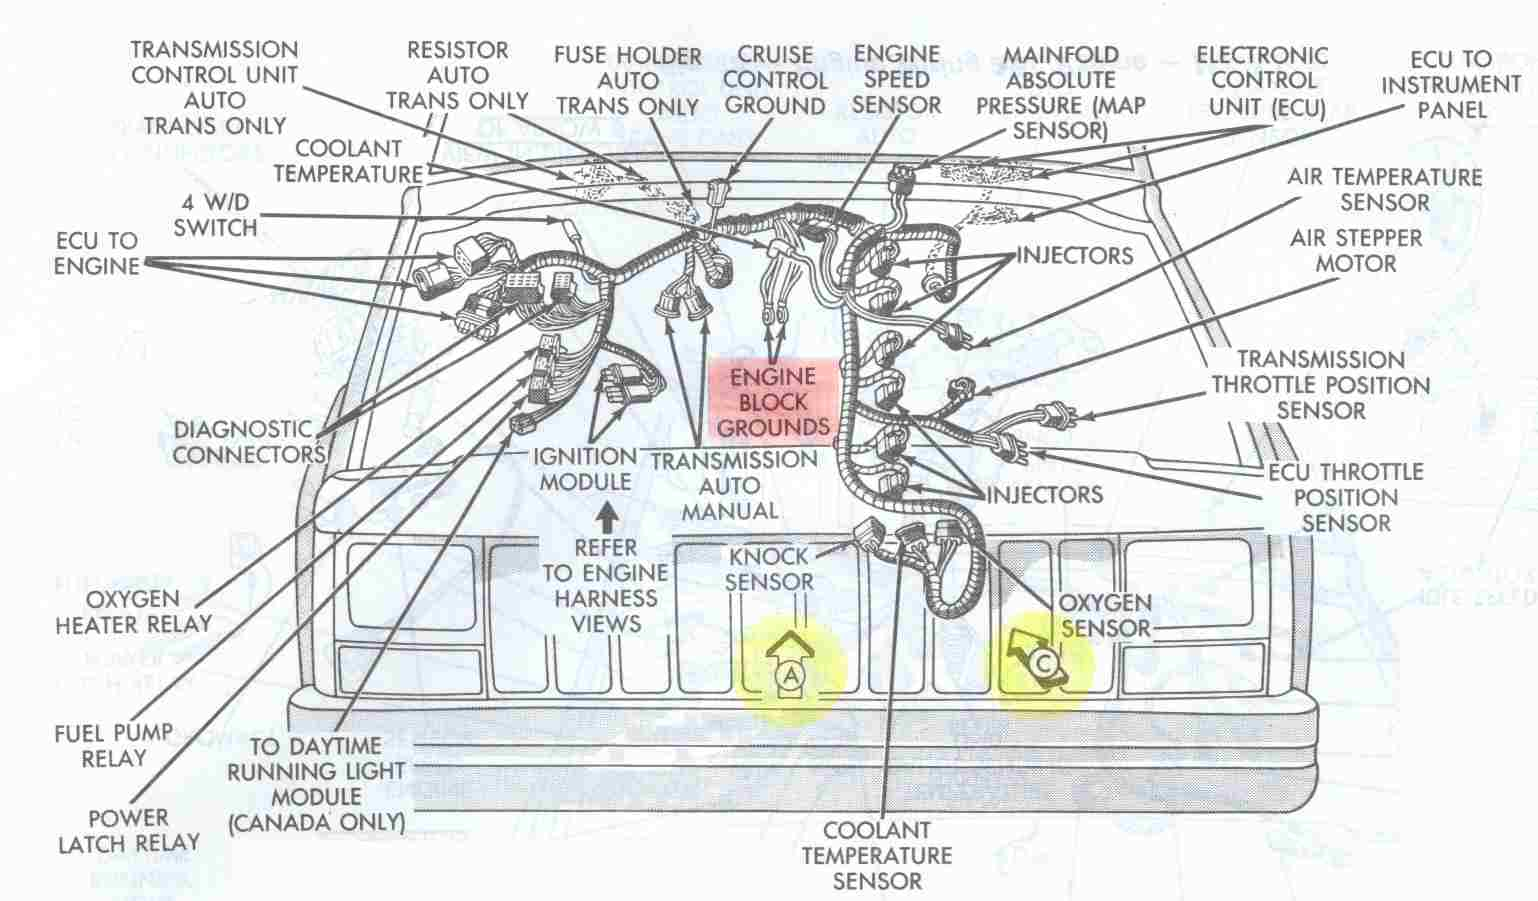 Electrical_Engine_Ground_Points_Overview 98 jeep cherokee engine diagram on 98 download wirning diagrams 96 jeep cherokee wiring diagram at soozxer.org